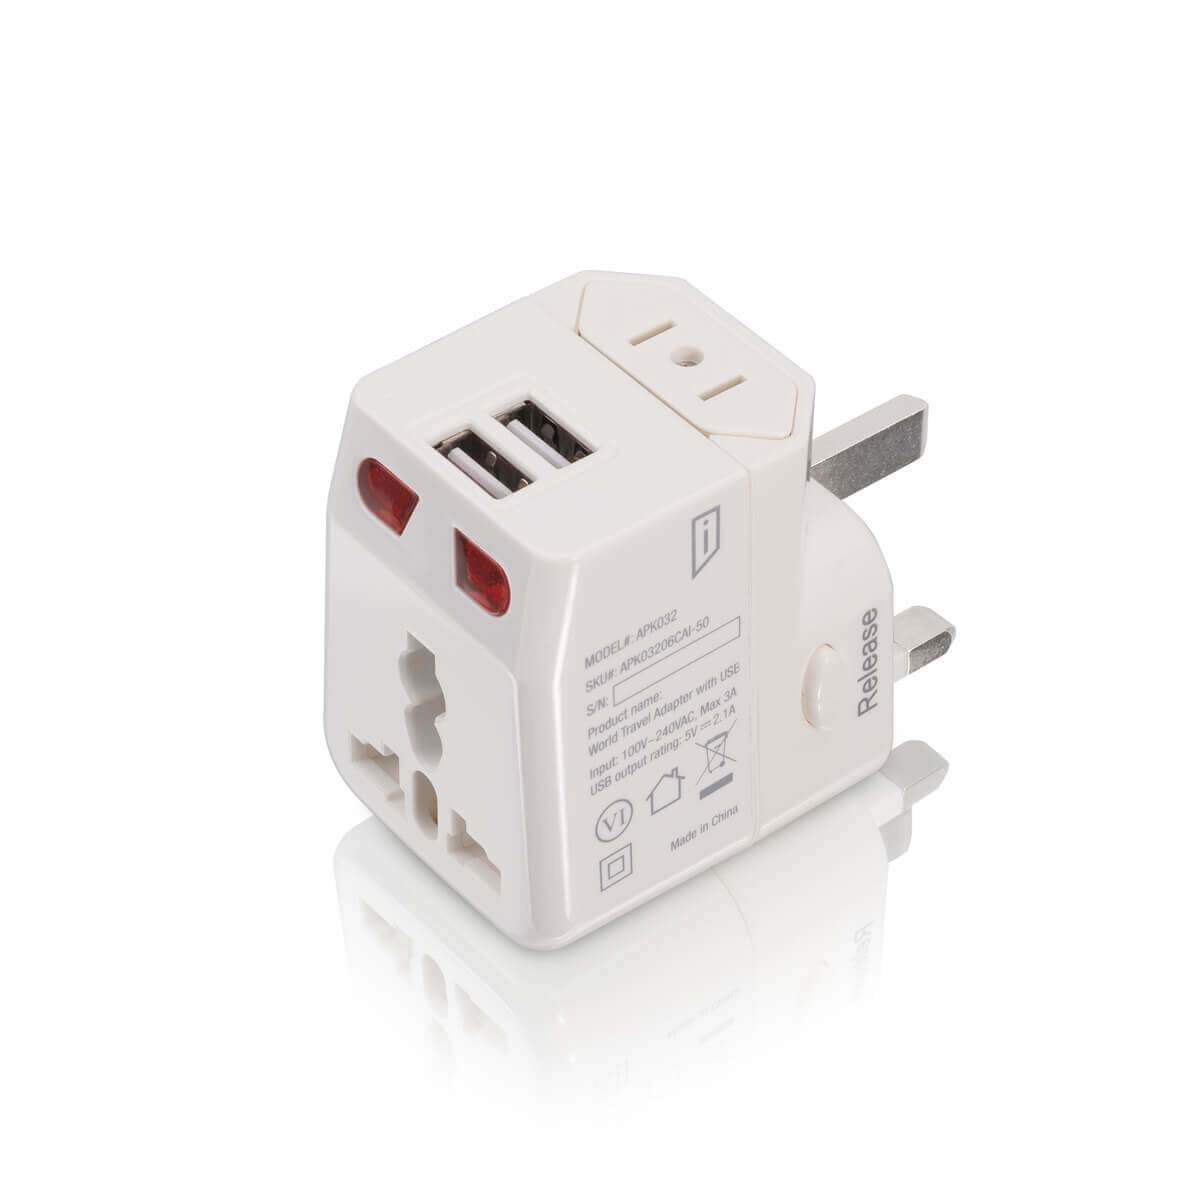 iStore World Travel Adapter with Dual USB Charging Ports